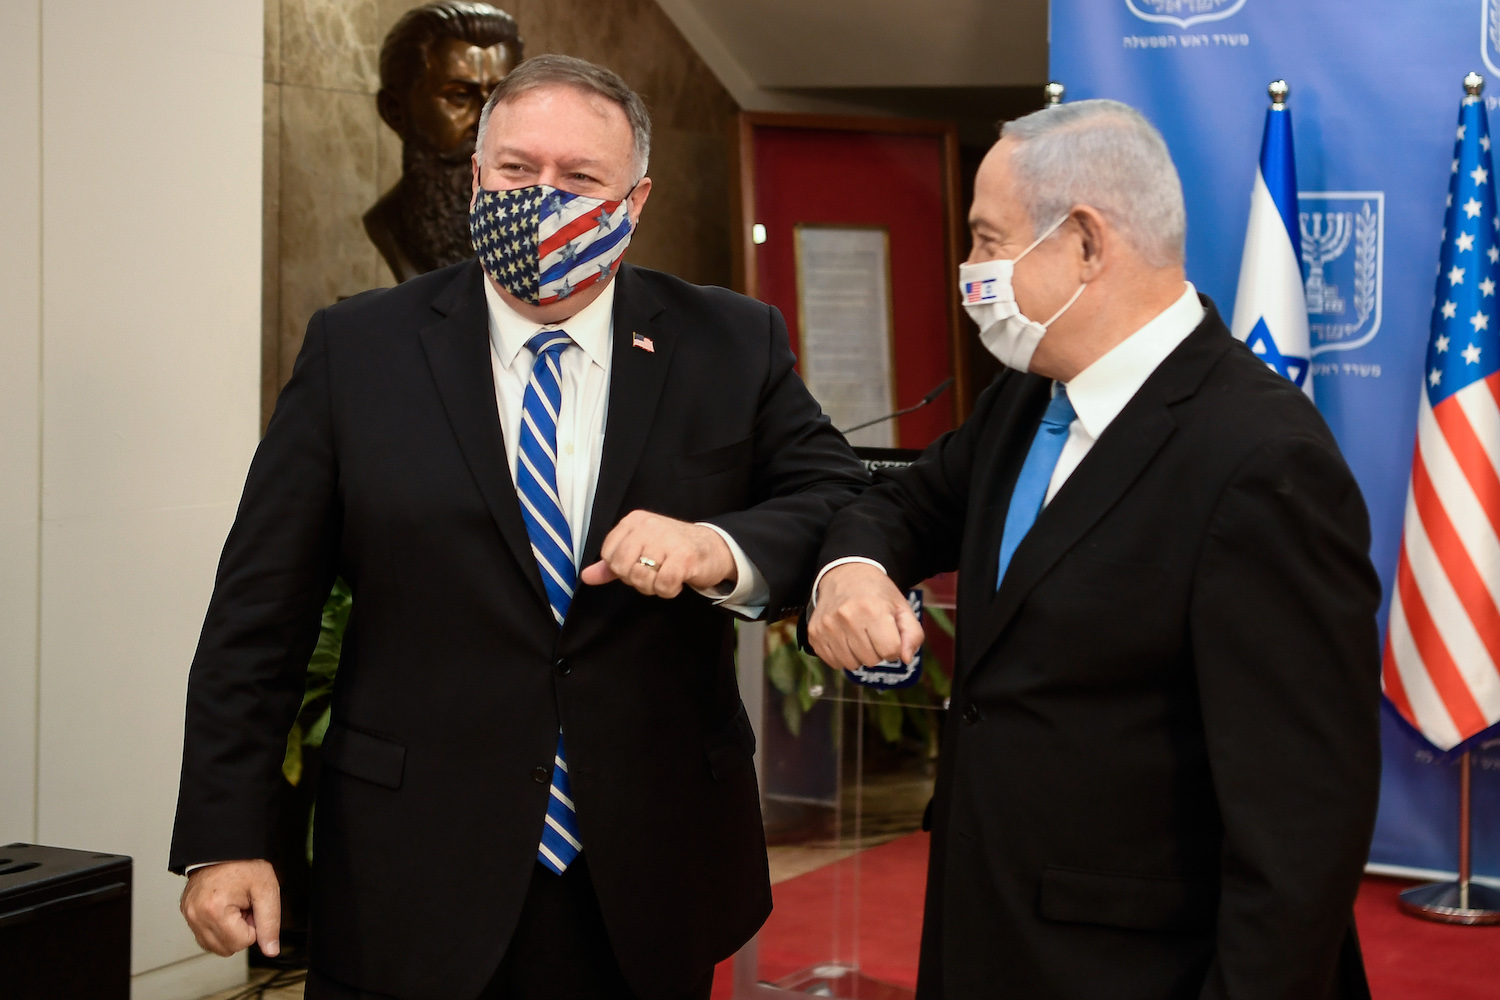 U.S. Secretary of State Michael Pompeo and Israeli Prime Minister Benjamin Netanyahu give a joint statement in Jerusalem on August 24, 2020. (Matty Stern/U.S. Embassy Jerusalem)